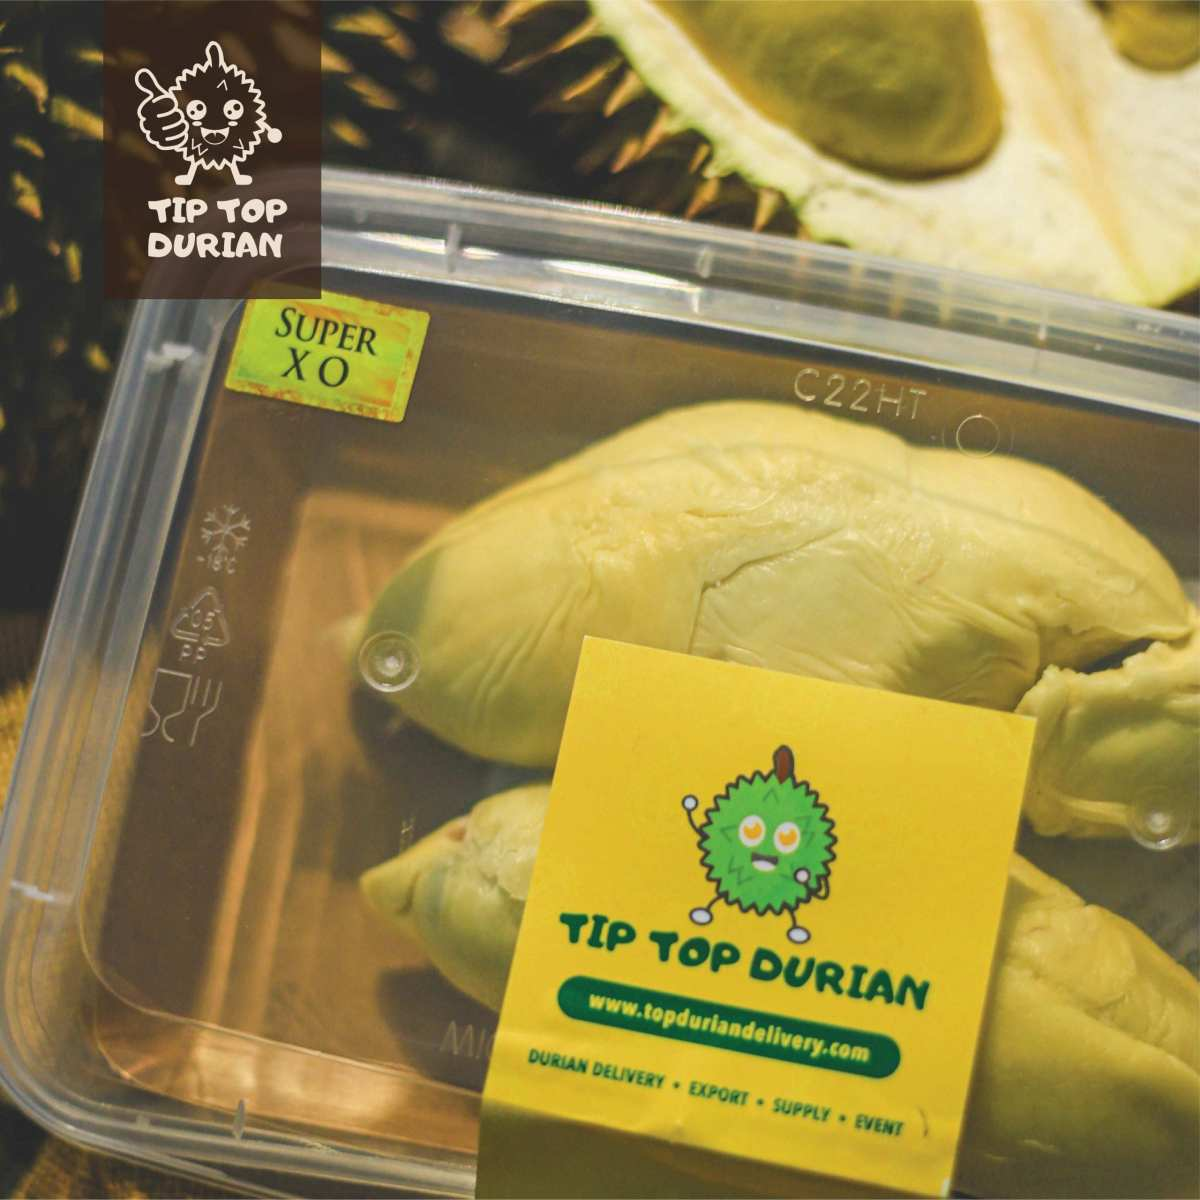 Super XO Premium In Packaging | Tip Top Durian Delivery | Malaysia Top Fresh Durian Online Delivery